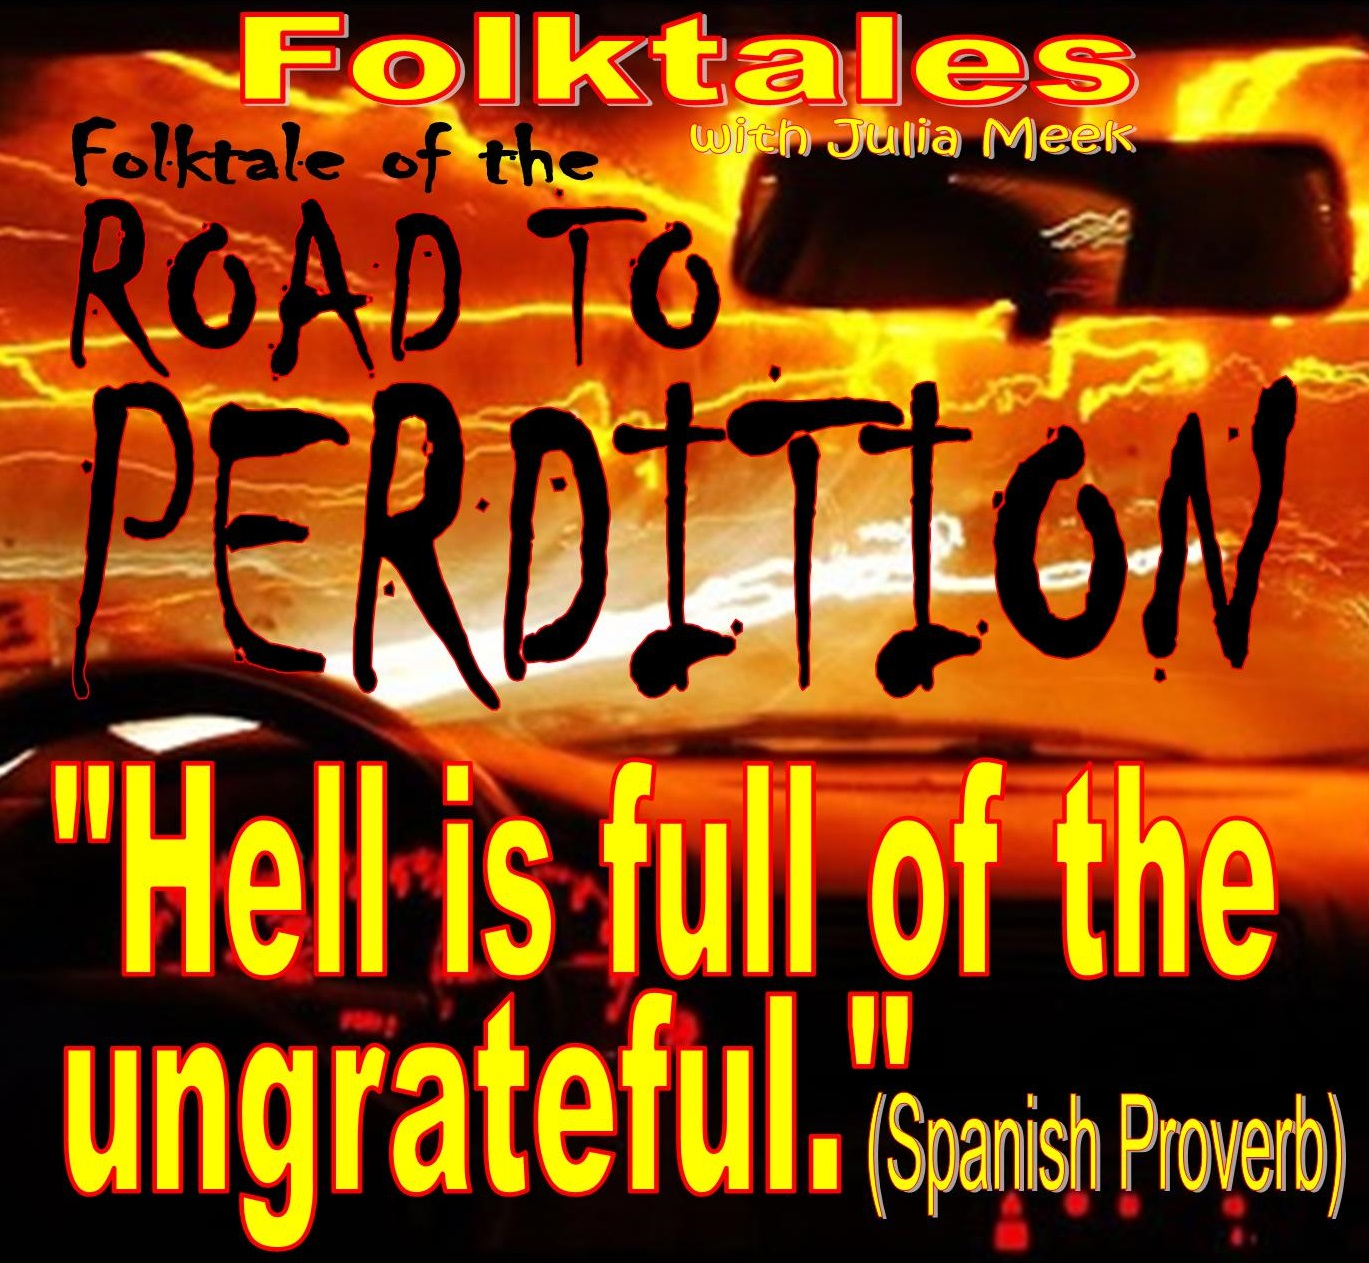 Caption: Folktale of The Road to Perdition, Credit: Julia Meek